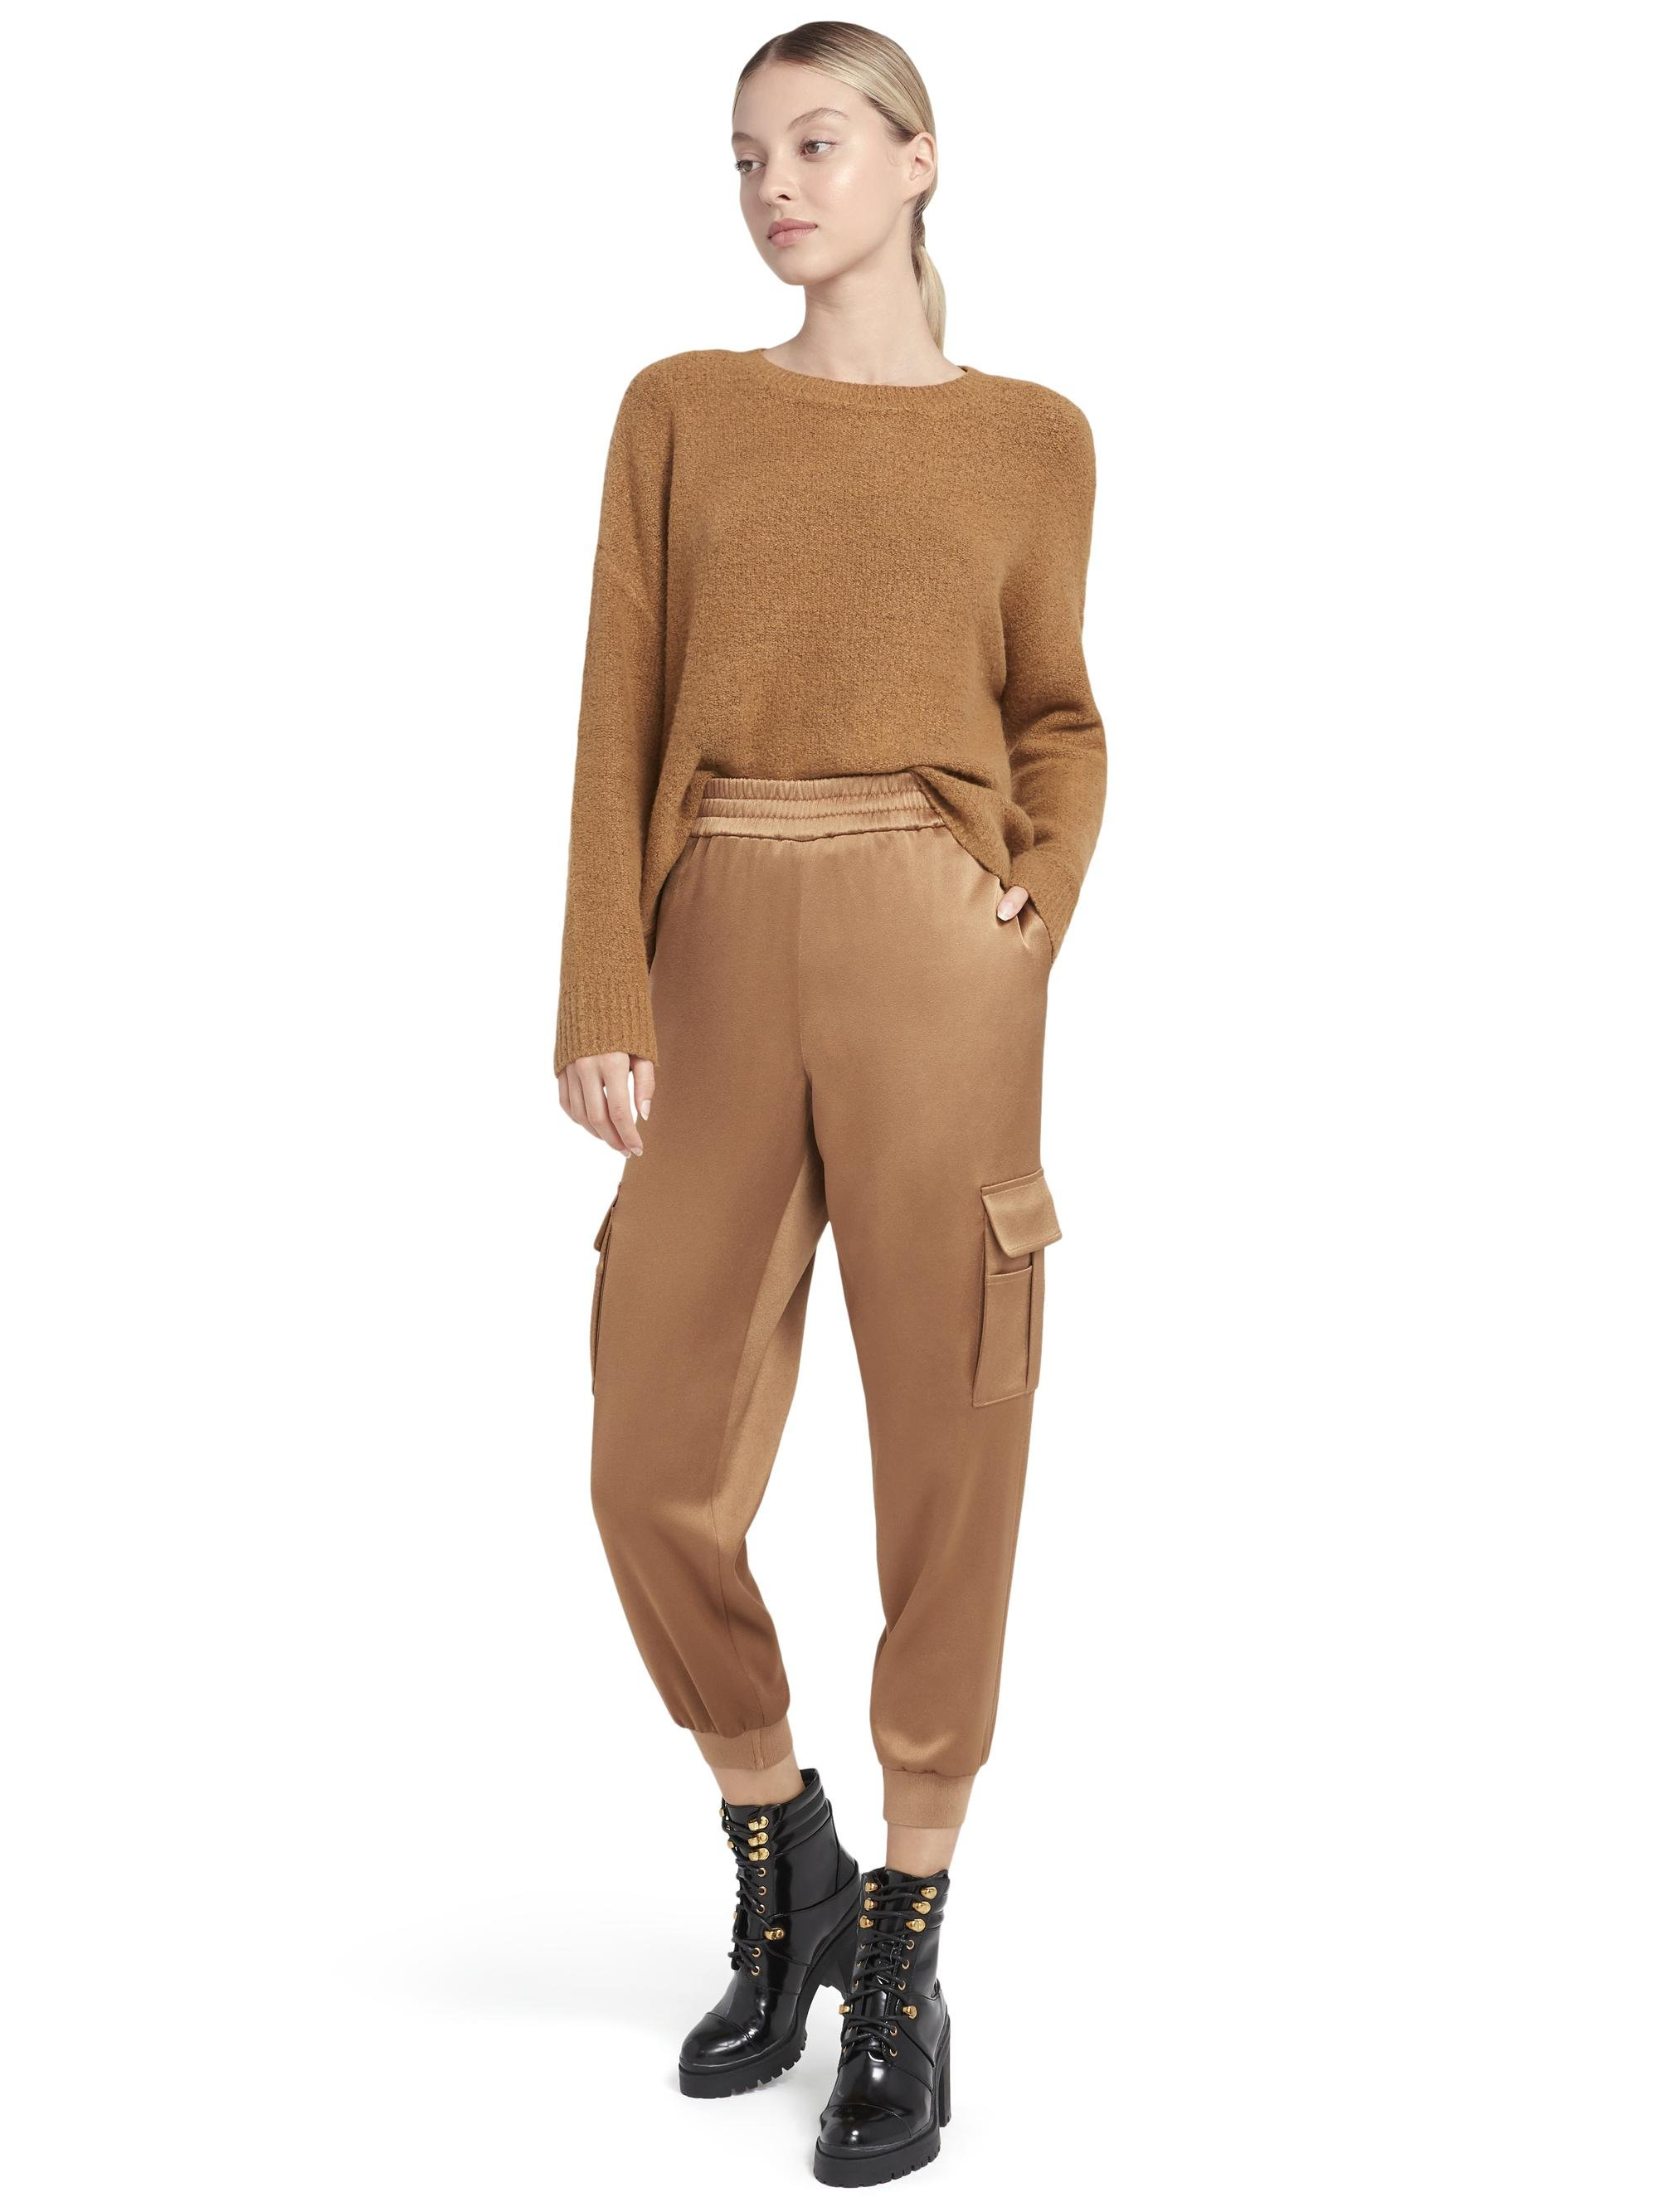 ROMA OVERSIZED PULLOVER 3